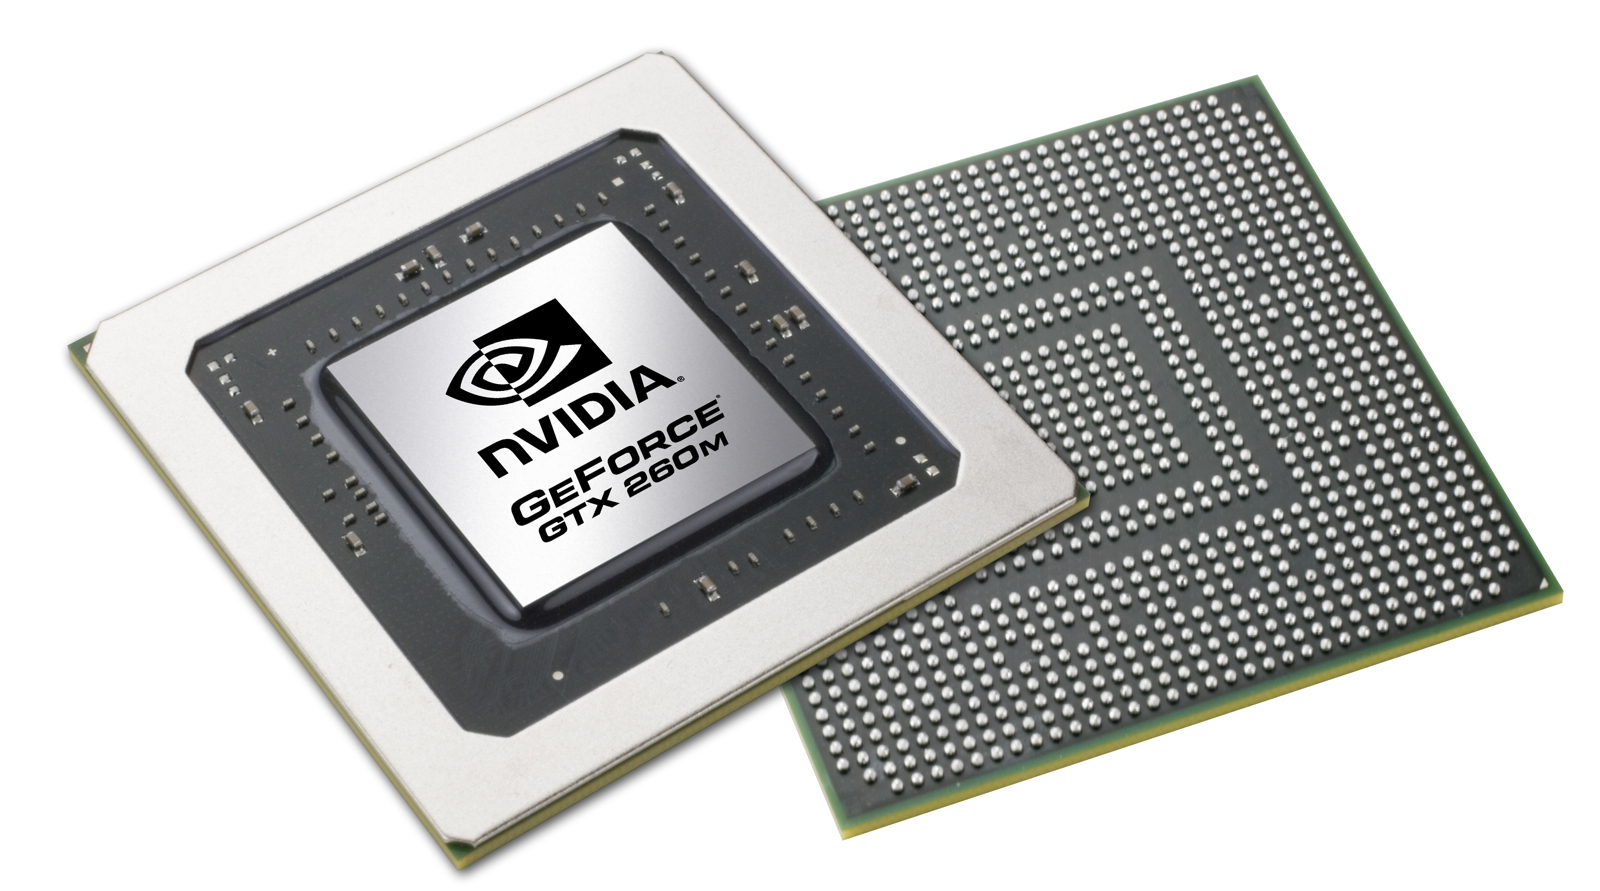 NVIDIA GeForce GTX 260M TechnikFAQ